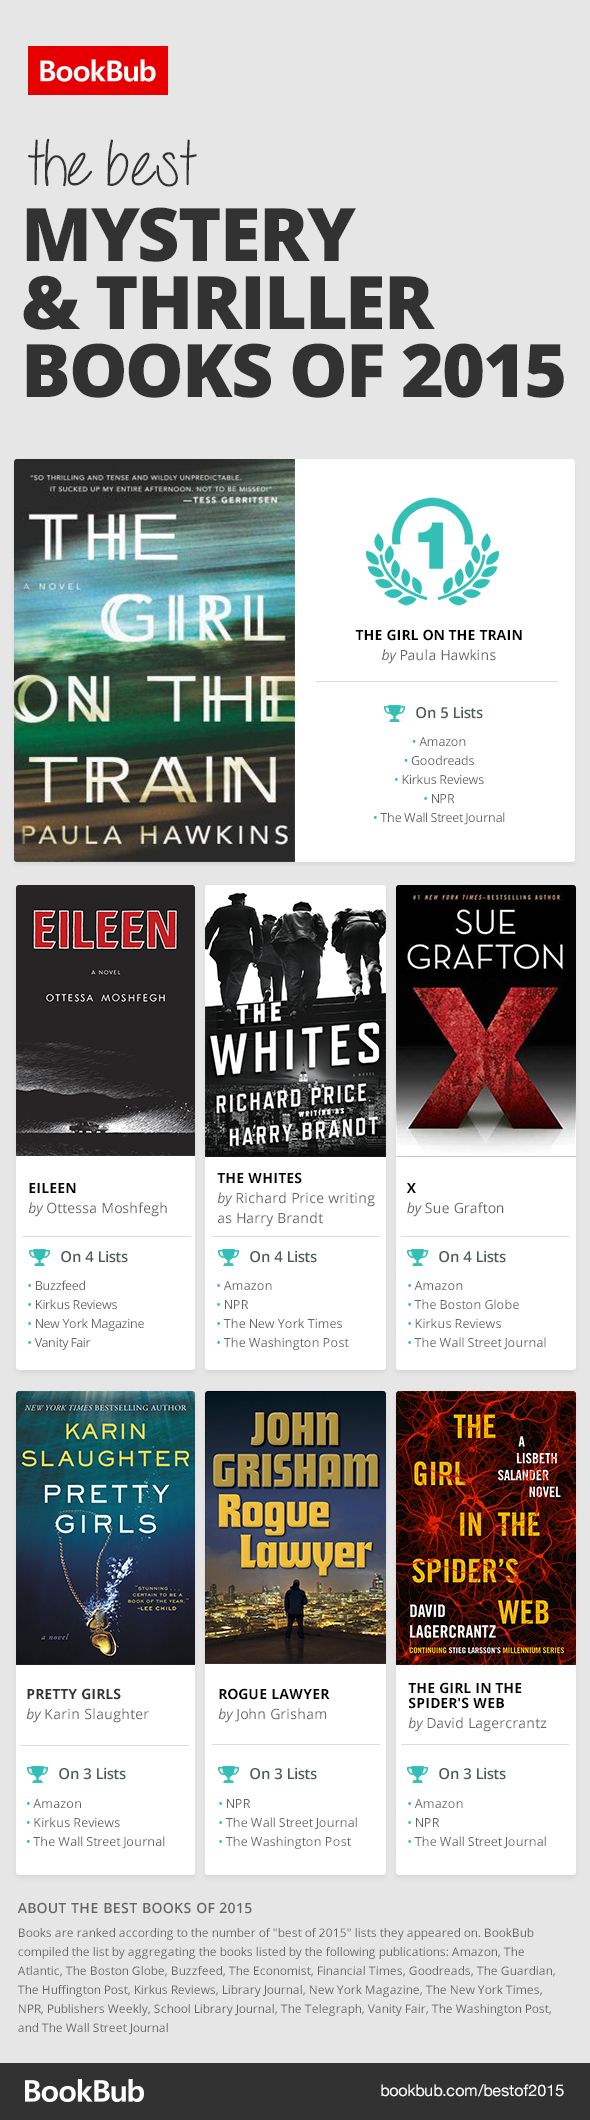 The Best Mysteries and Thrillers of 2015: These are the books worth reading!